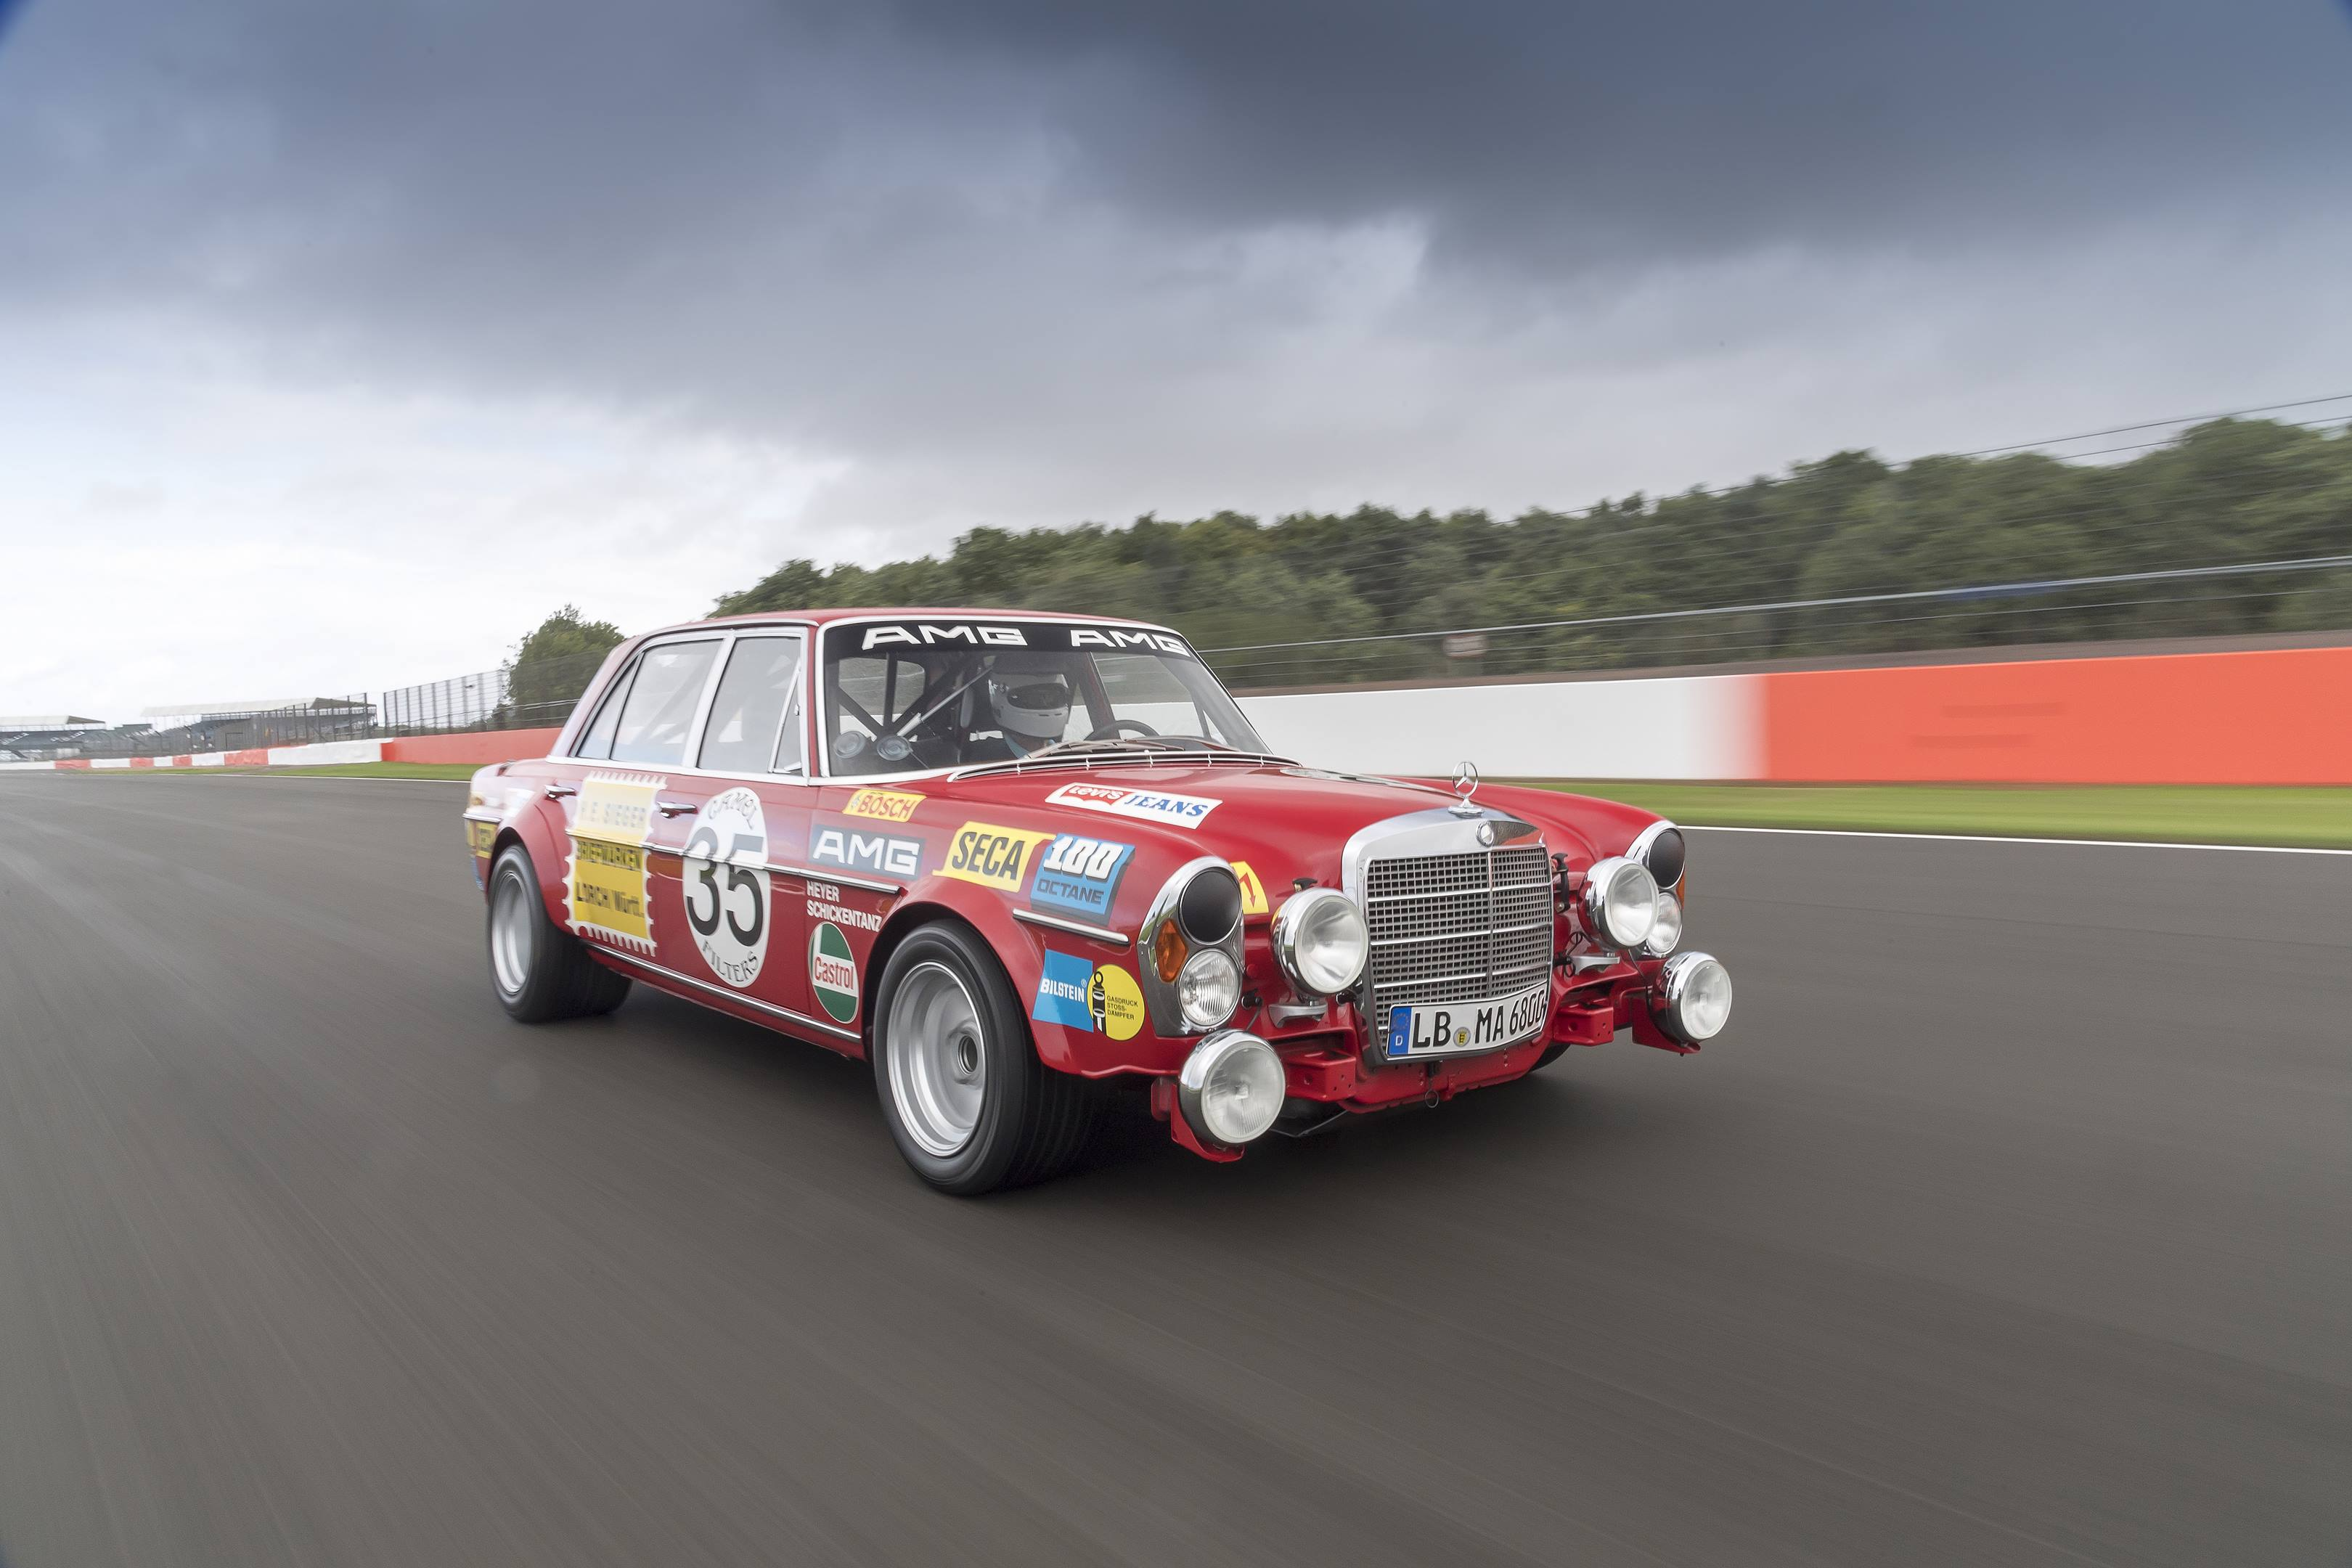 mercedes benz amg 300SEL 6.3 red pig silverstone front